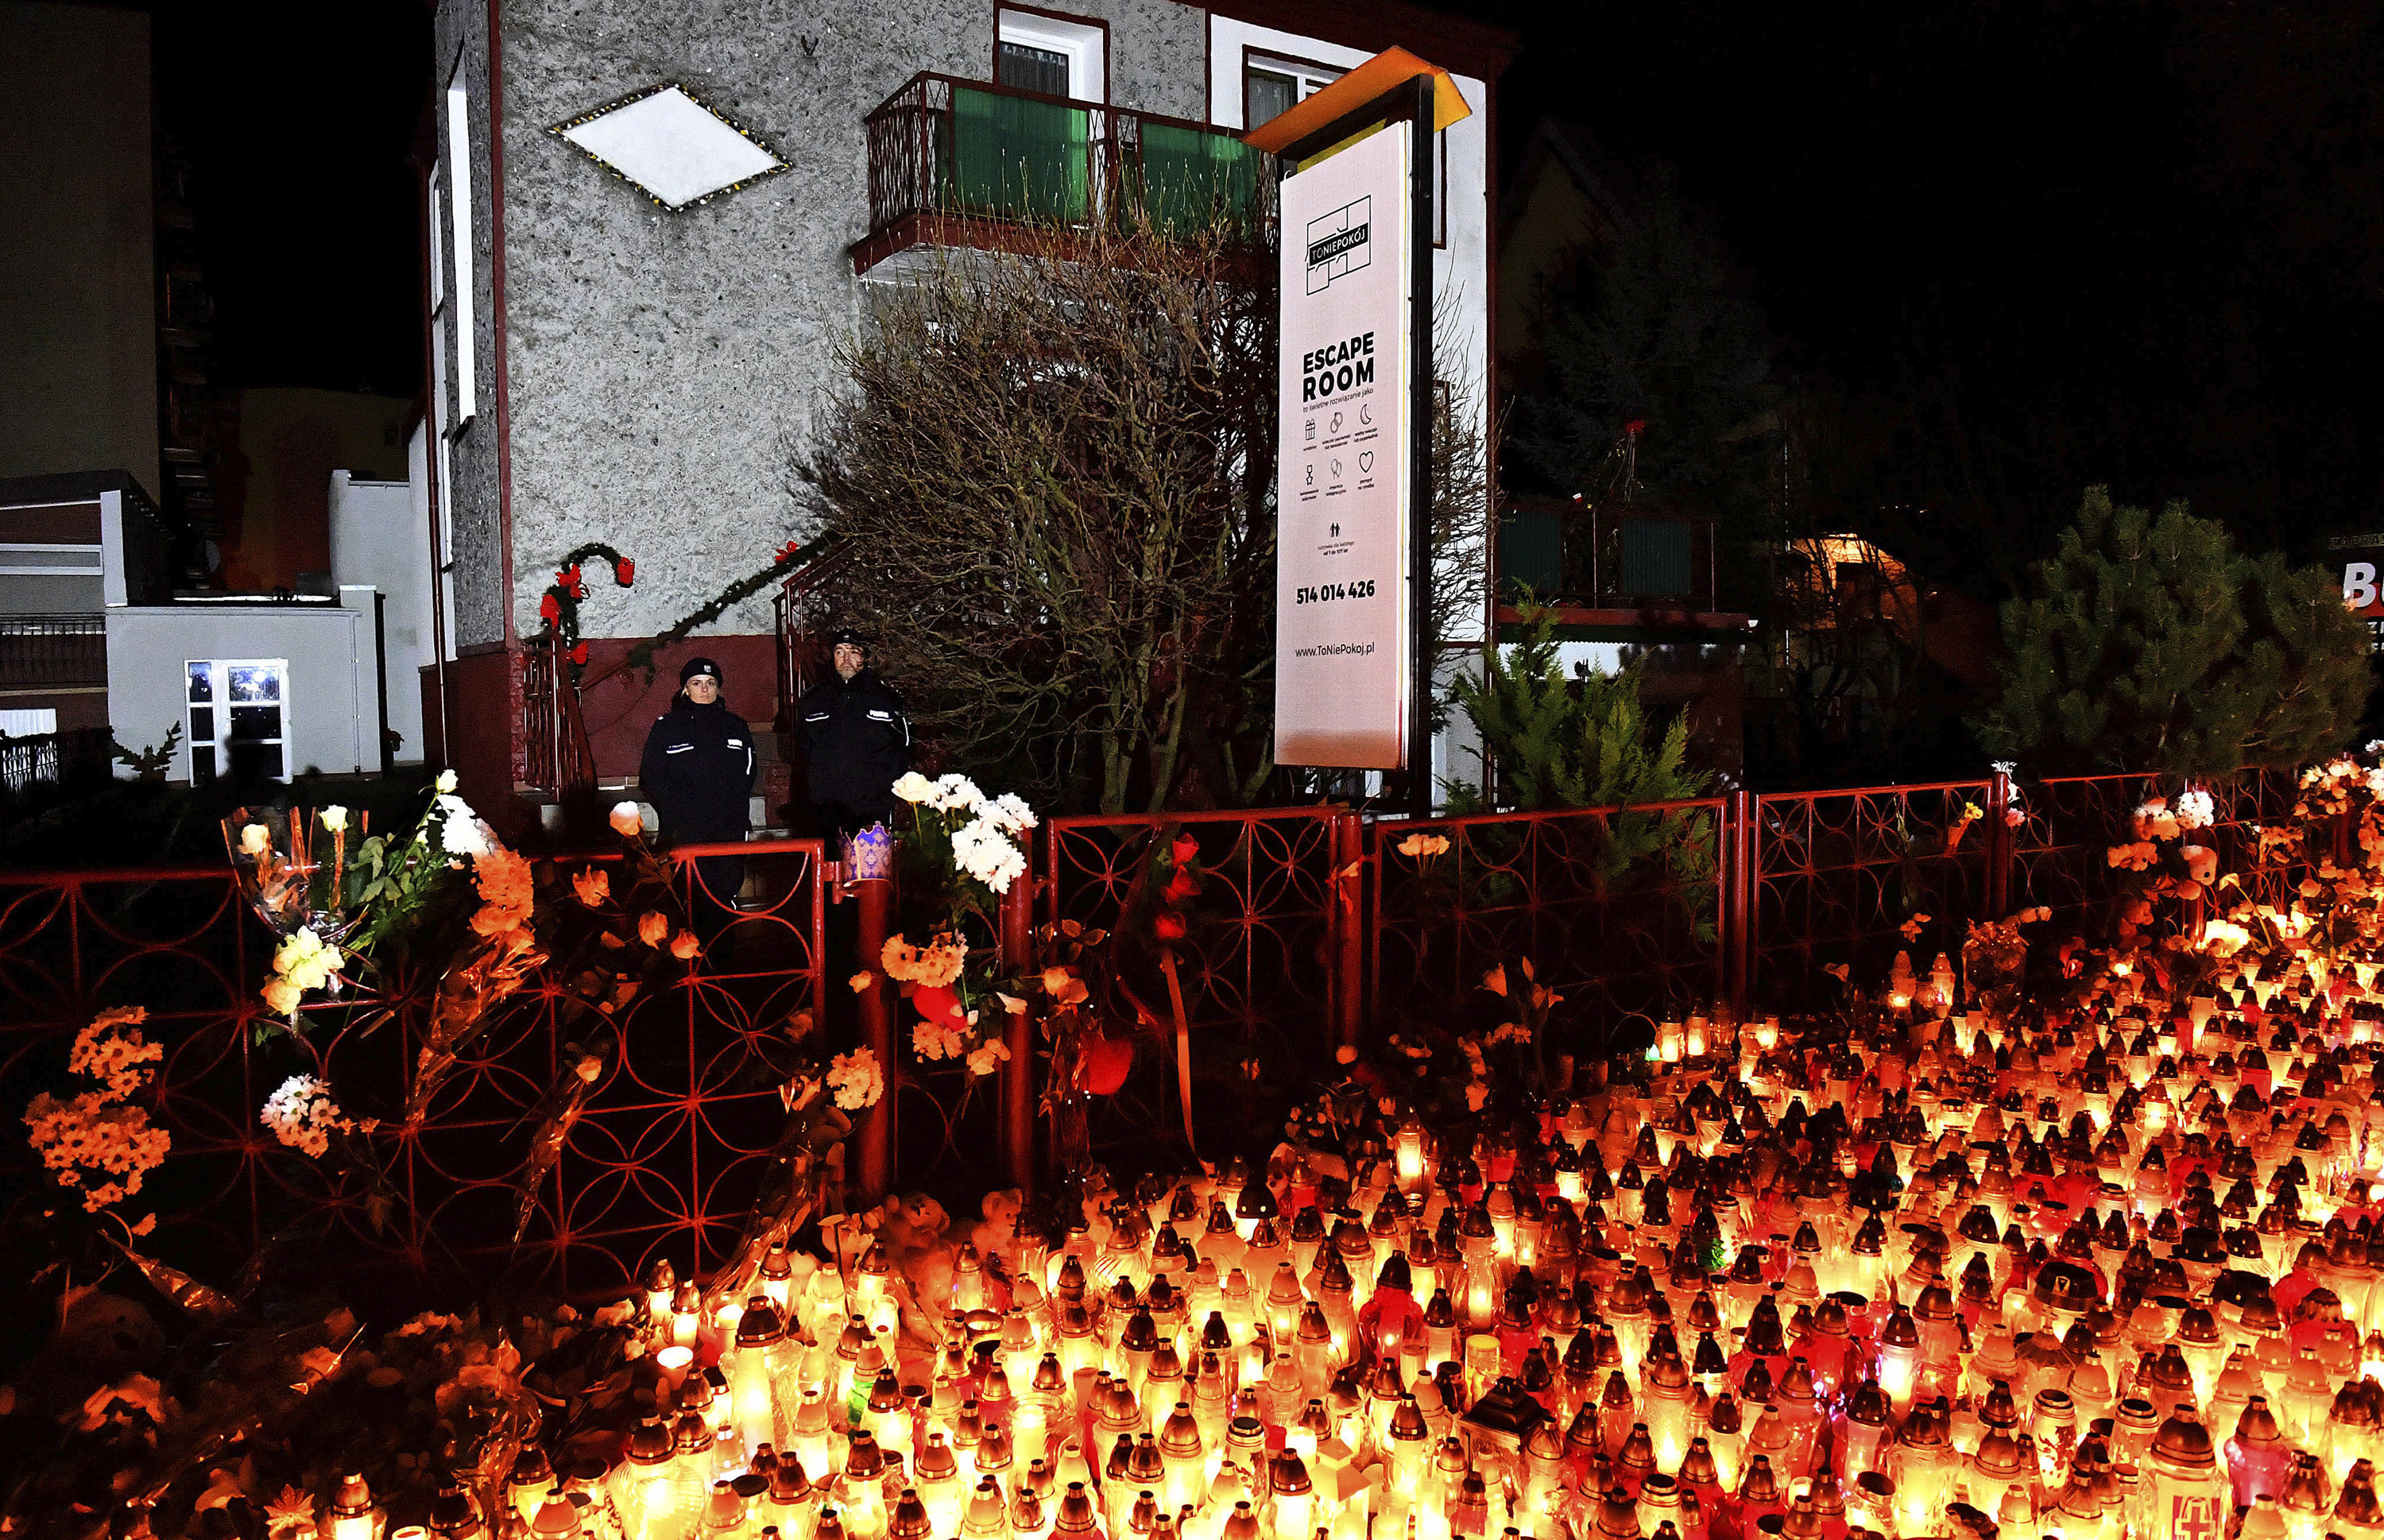 Lights, flowers and toys are left outside the escape room entertainment site where five teenage girls died in a fire last week, in Koszalin, northern Poland, on Sunday, Jan. 6, 2019. Sunday was designated a day of mourning and prayers in Koszalin for the girls and their families.